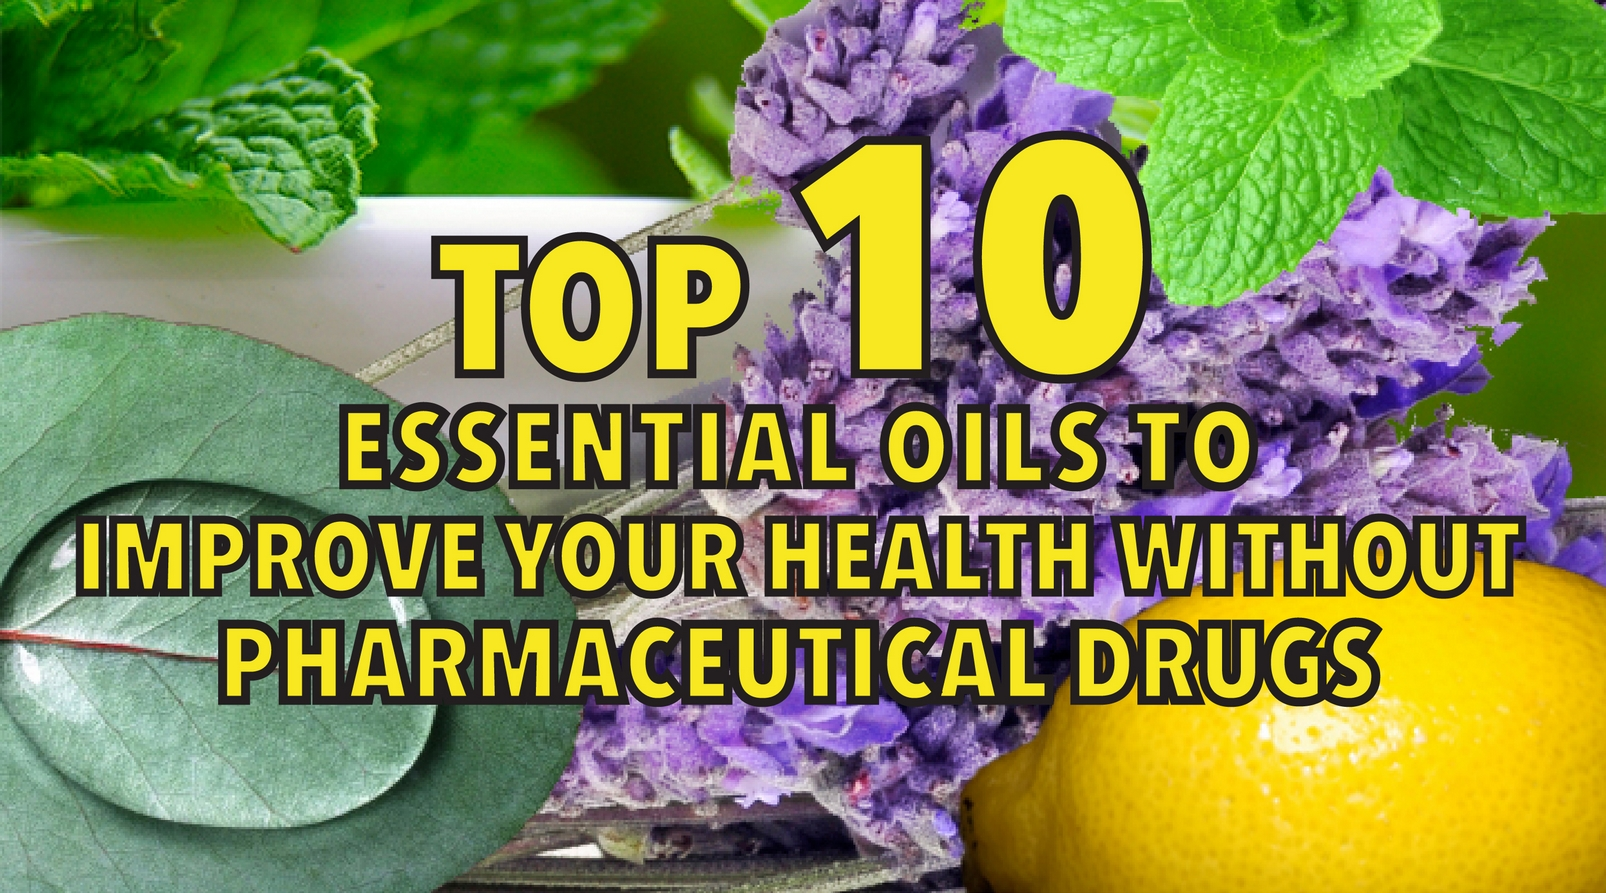 Top 10 essential oils to improve your health without pharmaceutical drugs